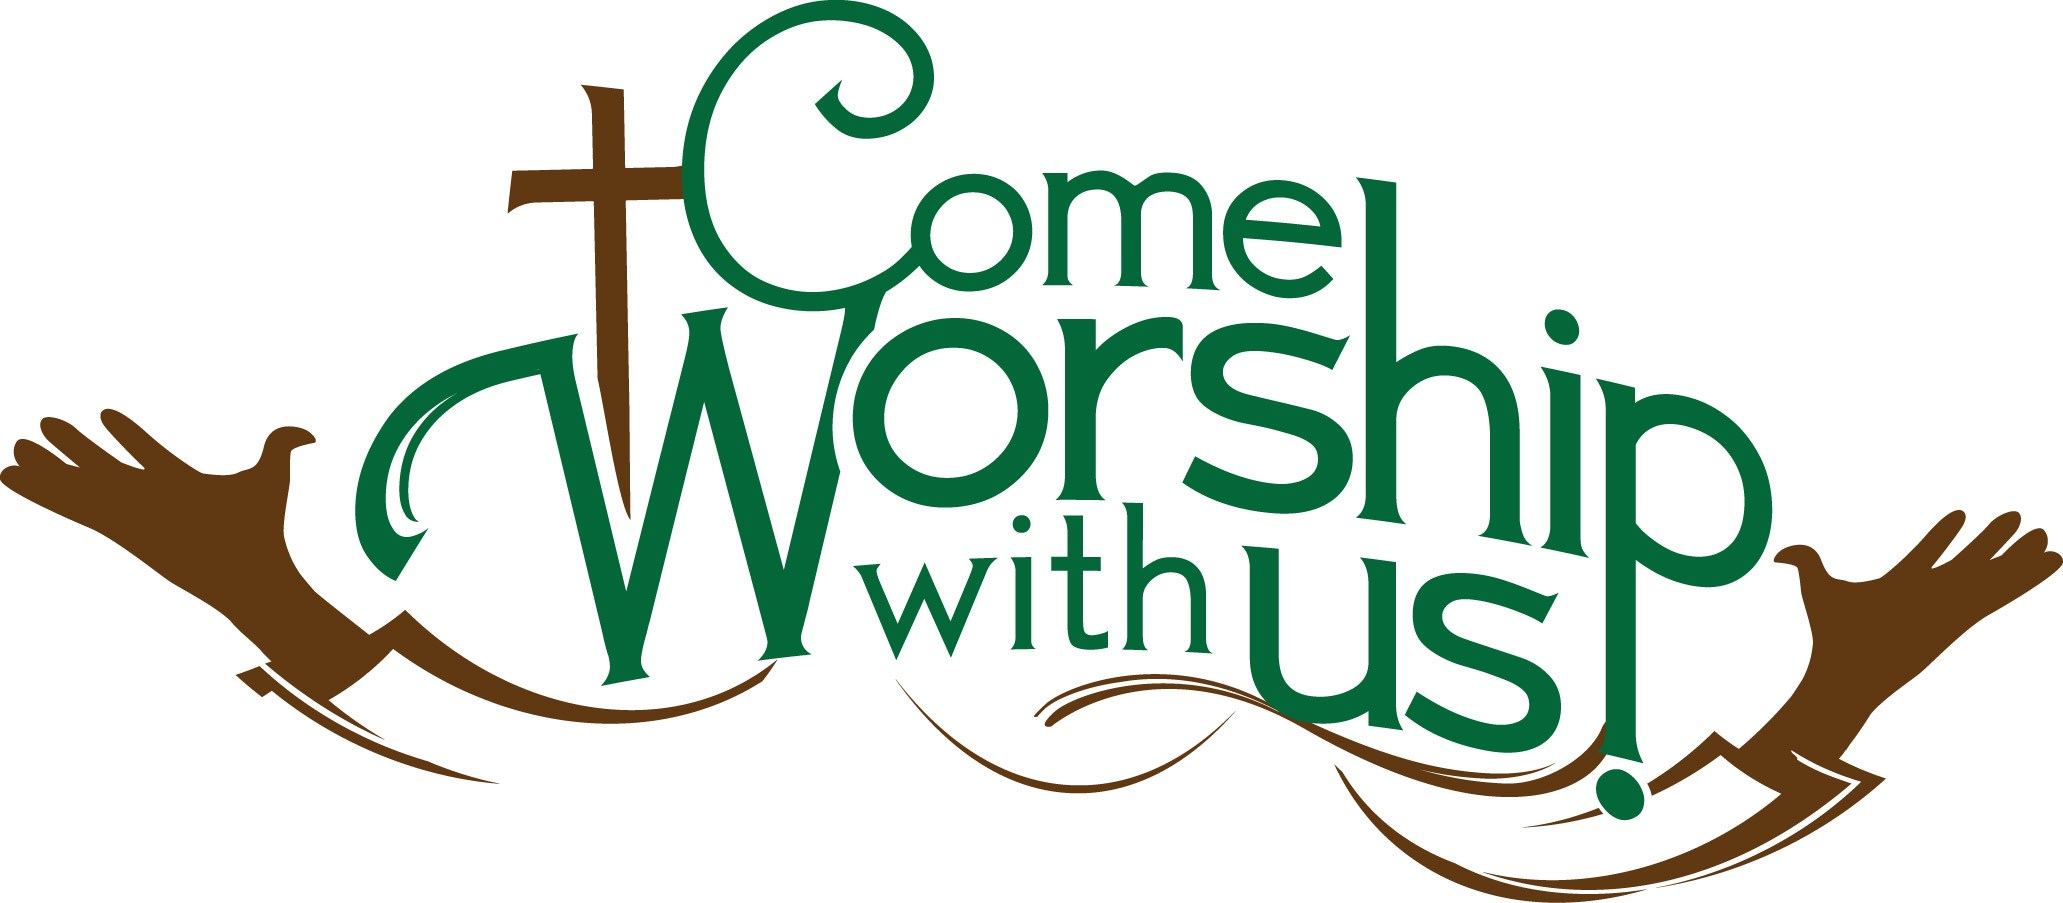 Worship with us clipart 4 » Clipart Portal.